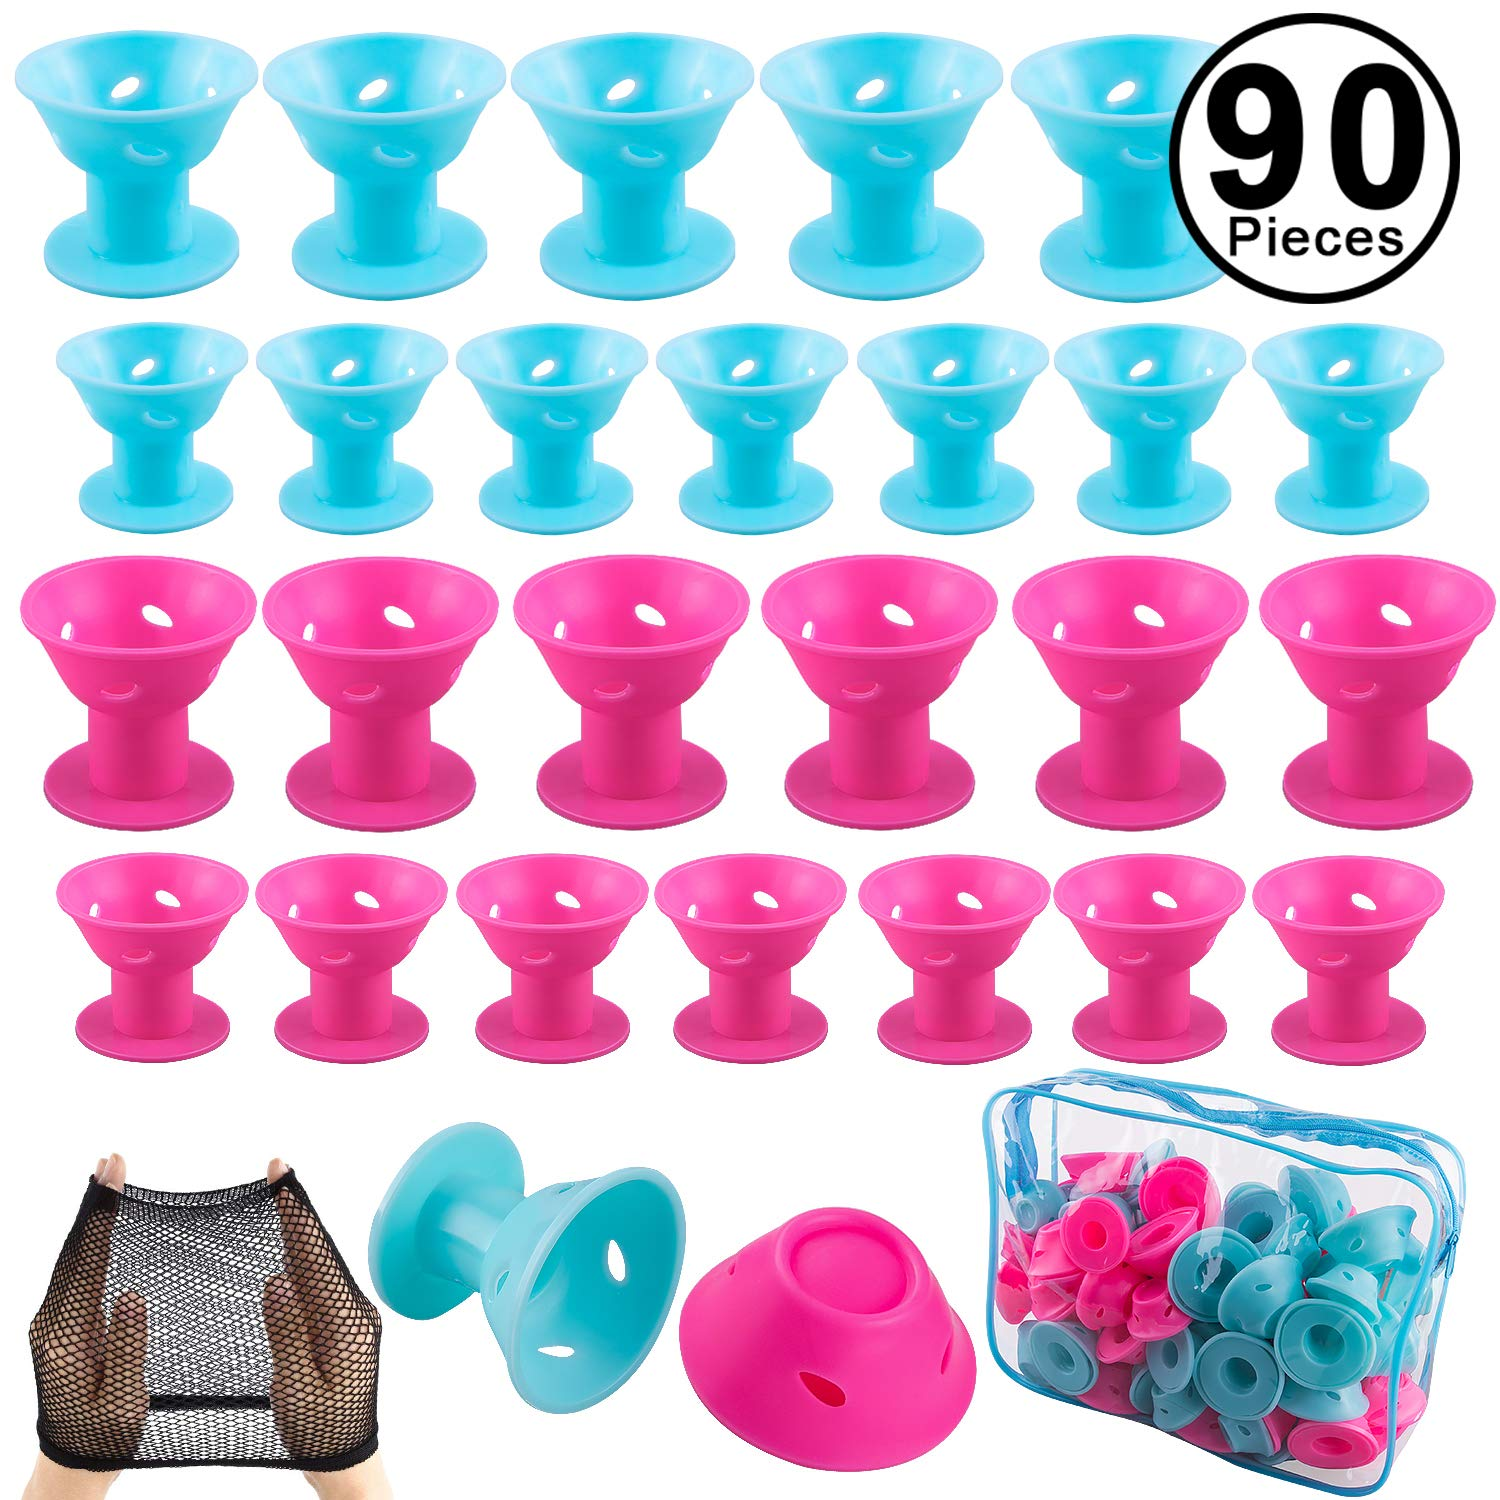 SIQUK 90 Pcs Hair Rollers Silicone Blue and Pink Hair Curlers Set Icluding 44 Pcs Large Hair Rollers and 44 Pcs Small Magic Hair Style Tools(Bonus: 1 Pc Transparent Zipper Bag,2 Pcs Black Wig Cap)